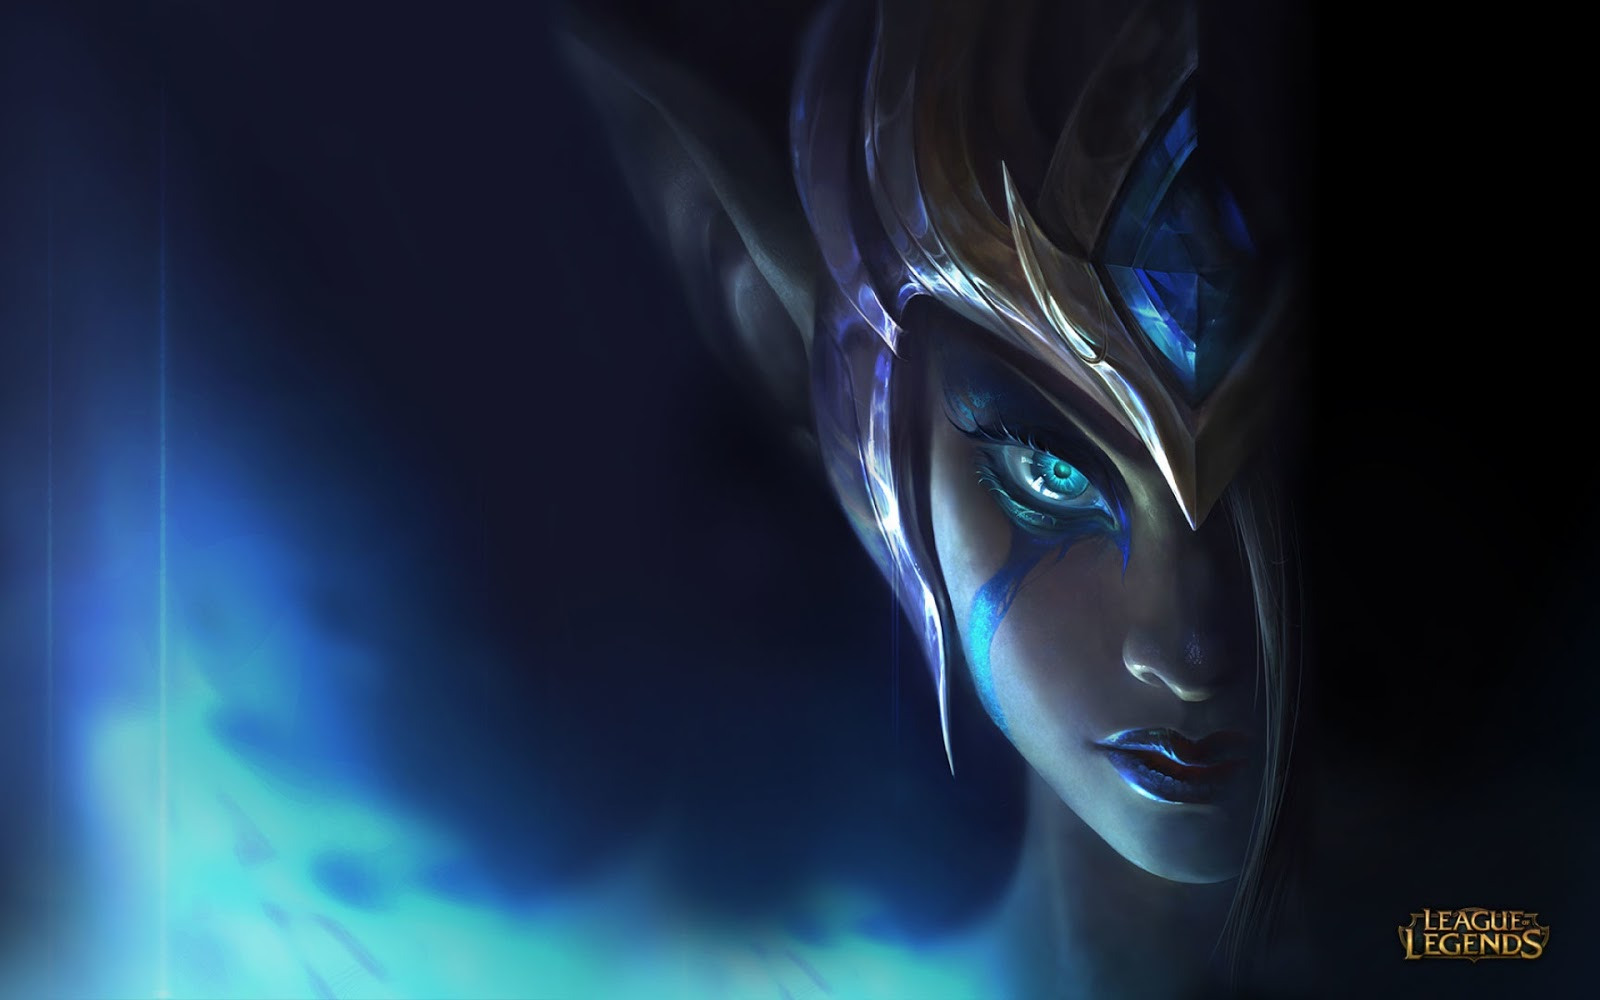 League Of Legends Game Hd Wallpapers Set 2 Hd